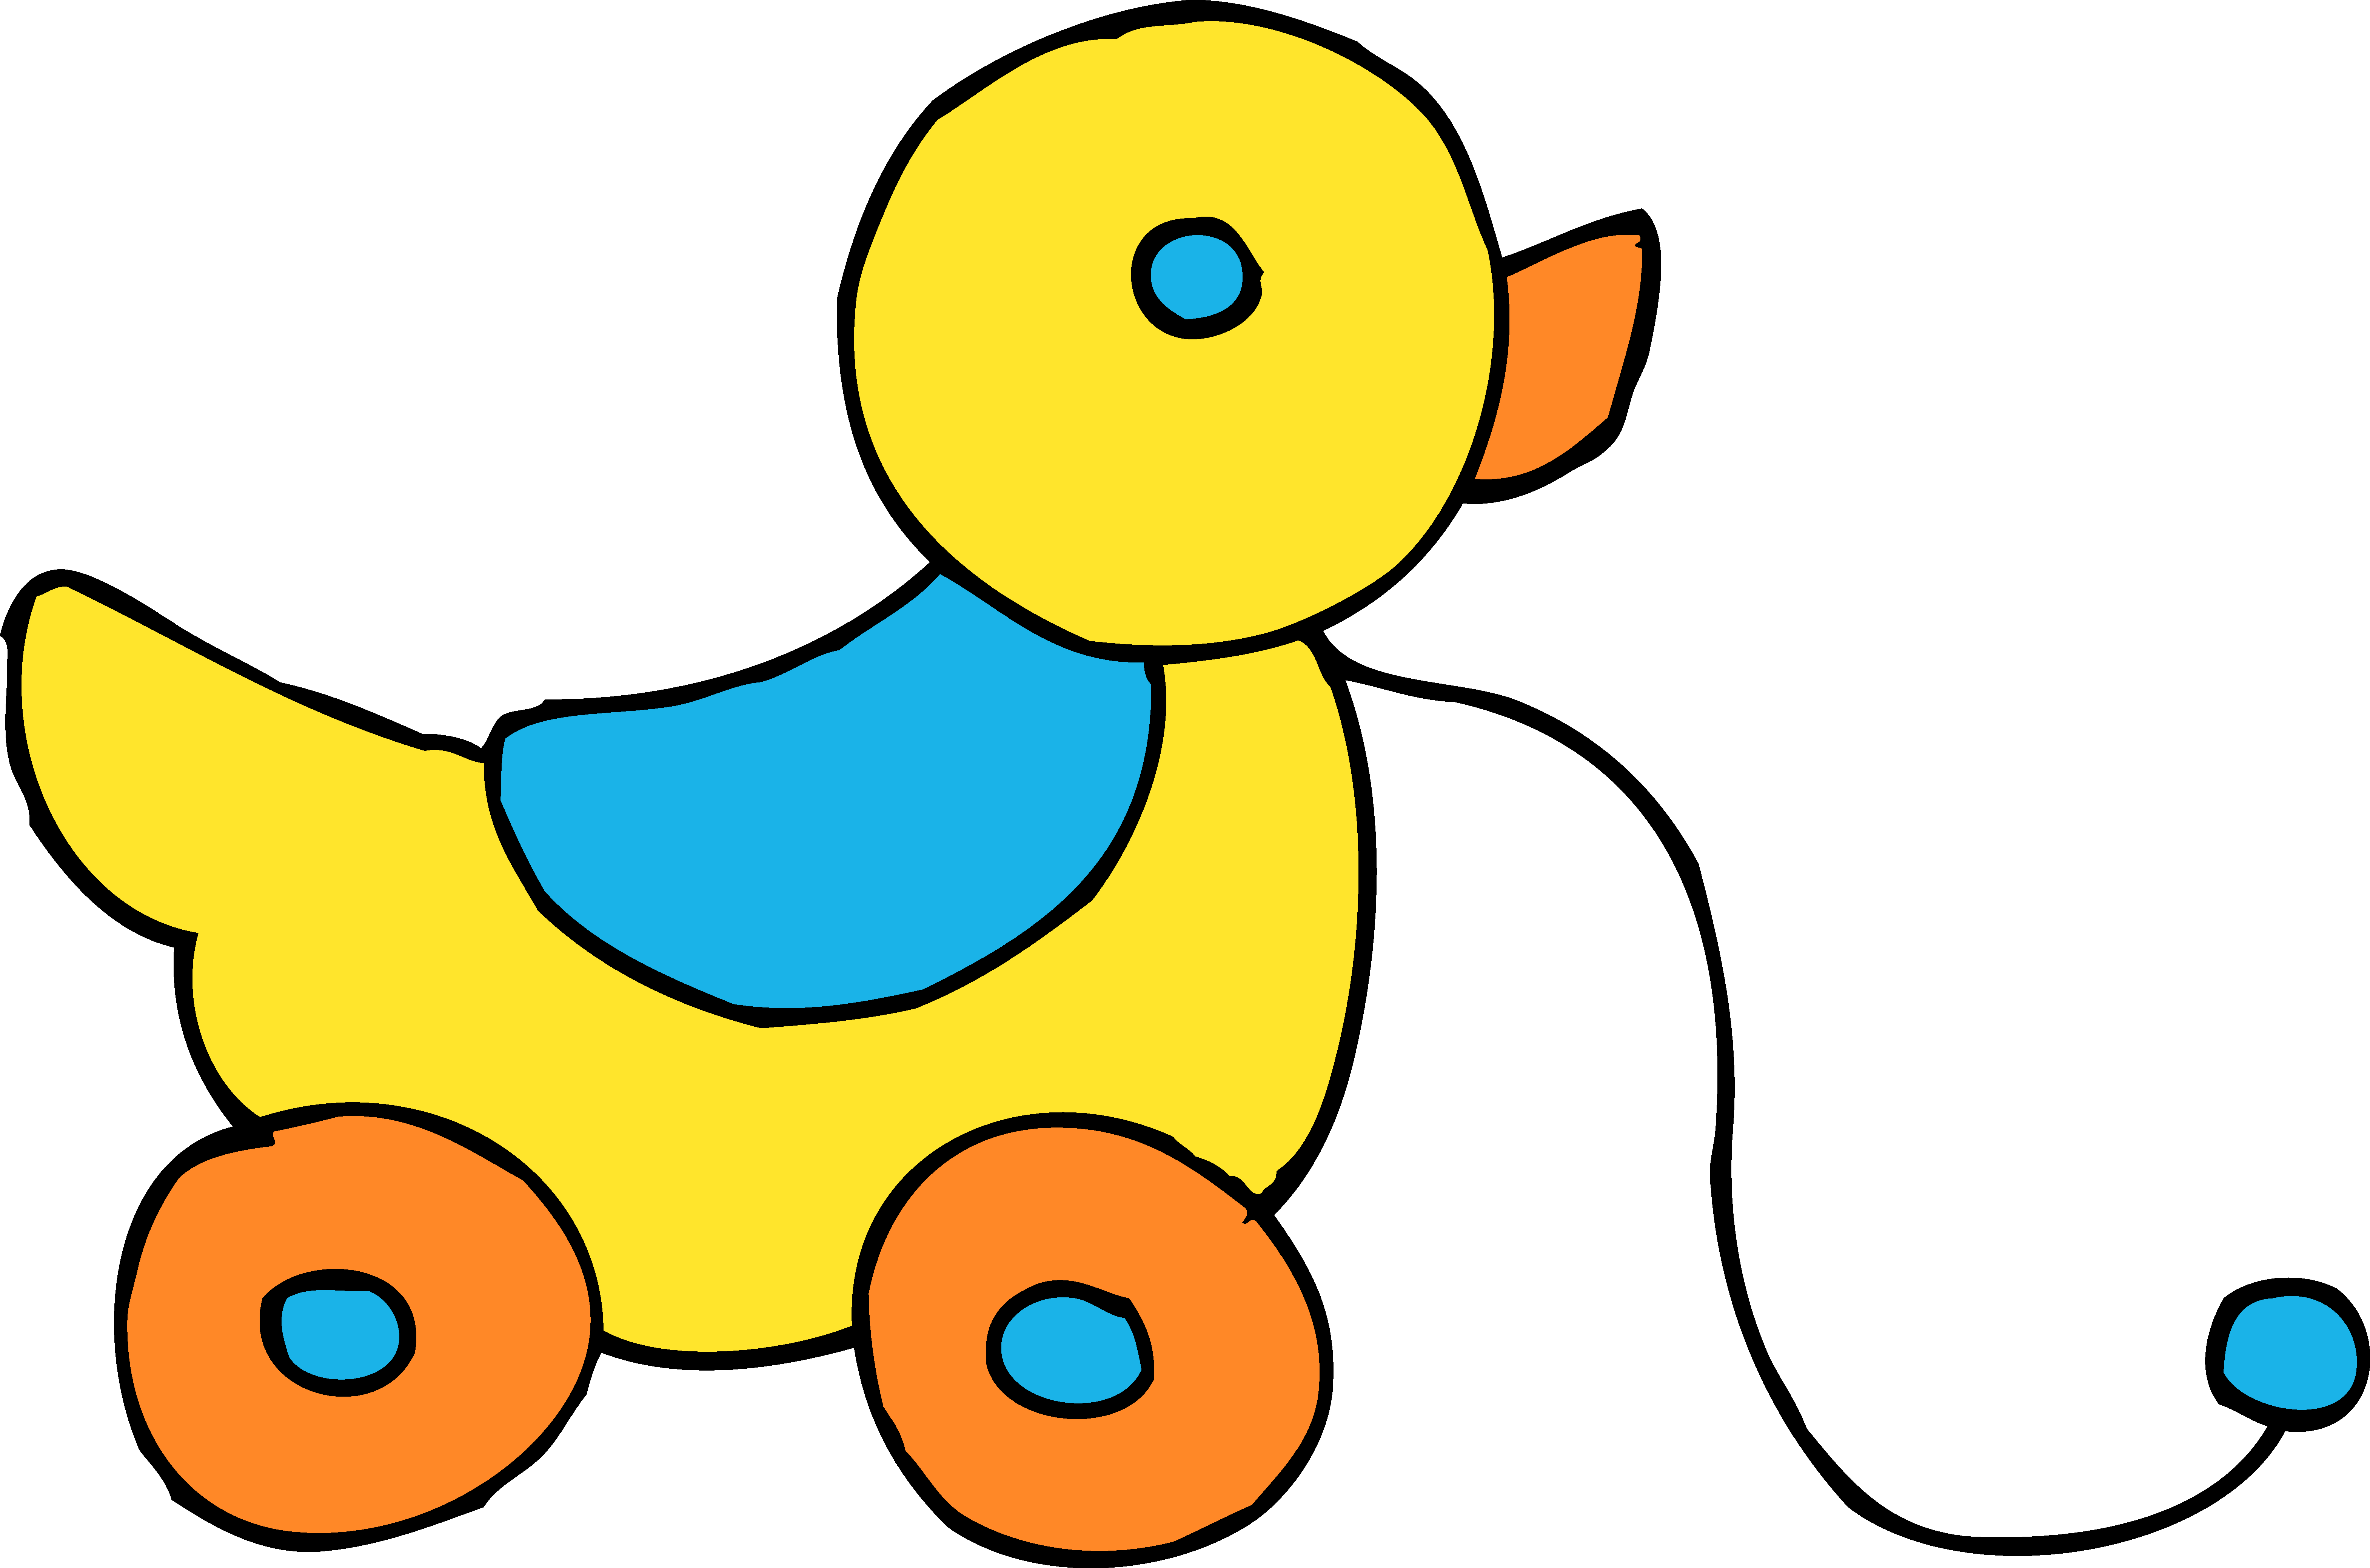 Duck toy clipart svg royalty free Baby Toys Clipart   Free download best Baby Toys Clipart on ... svg royalty free